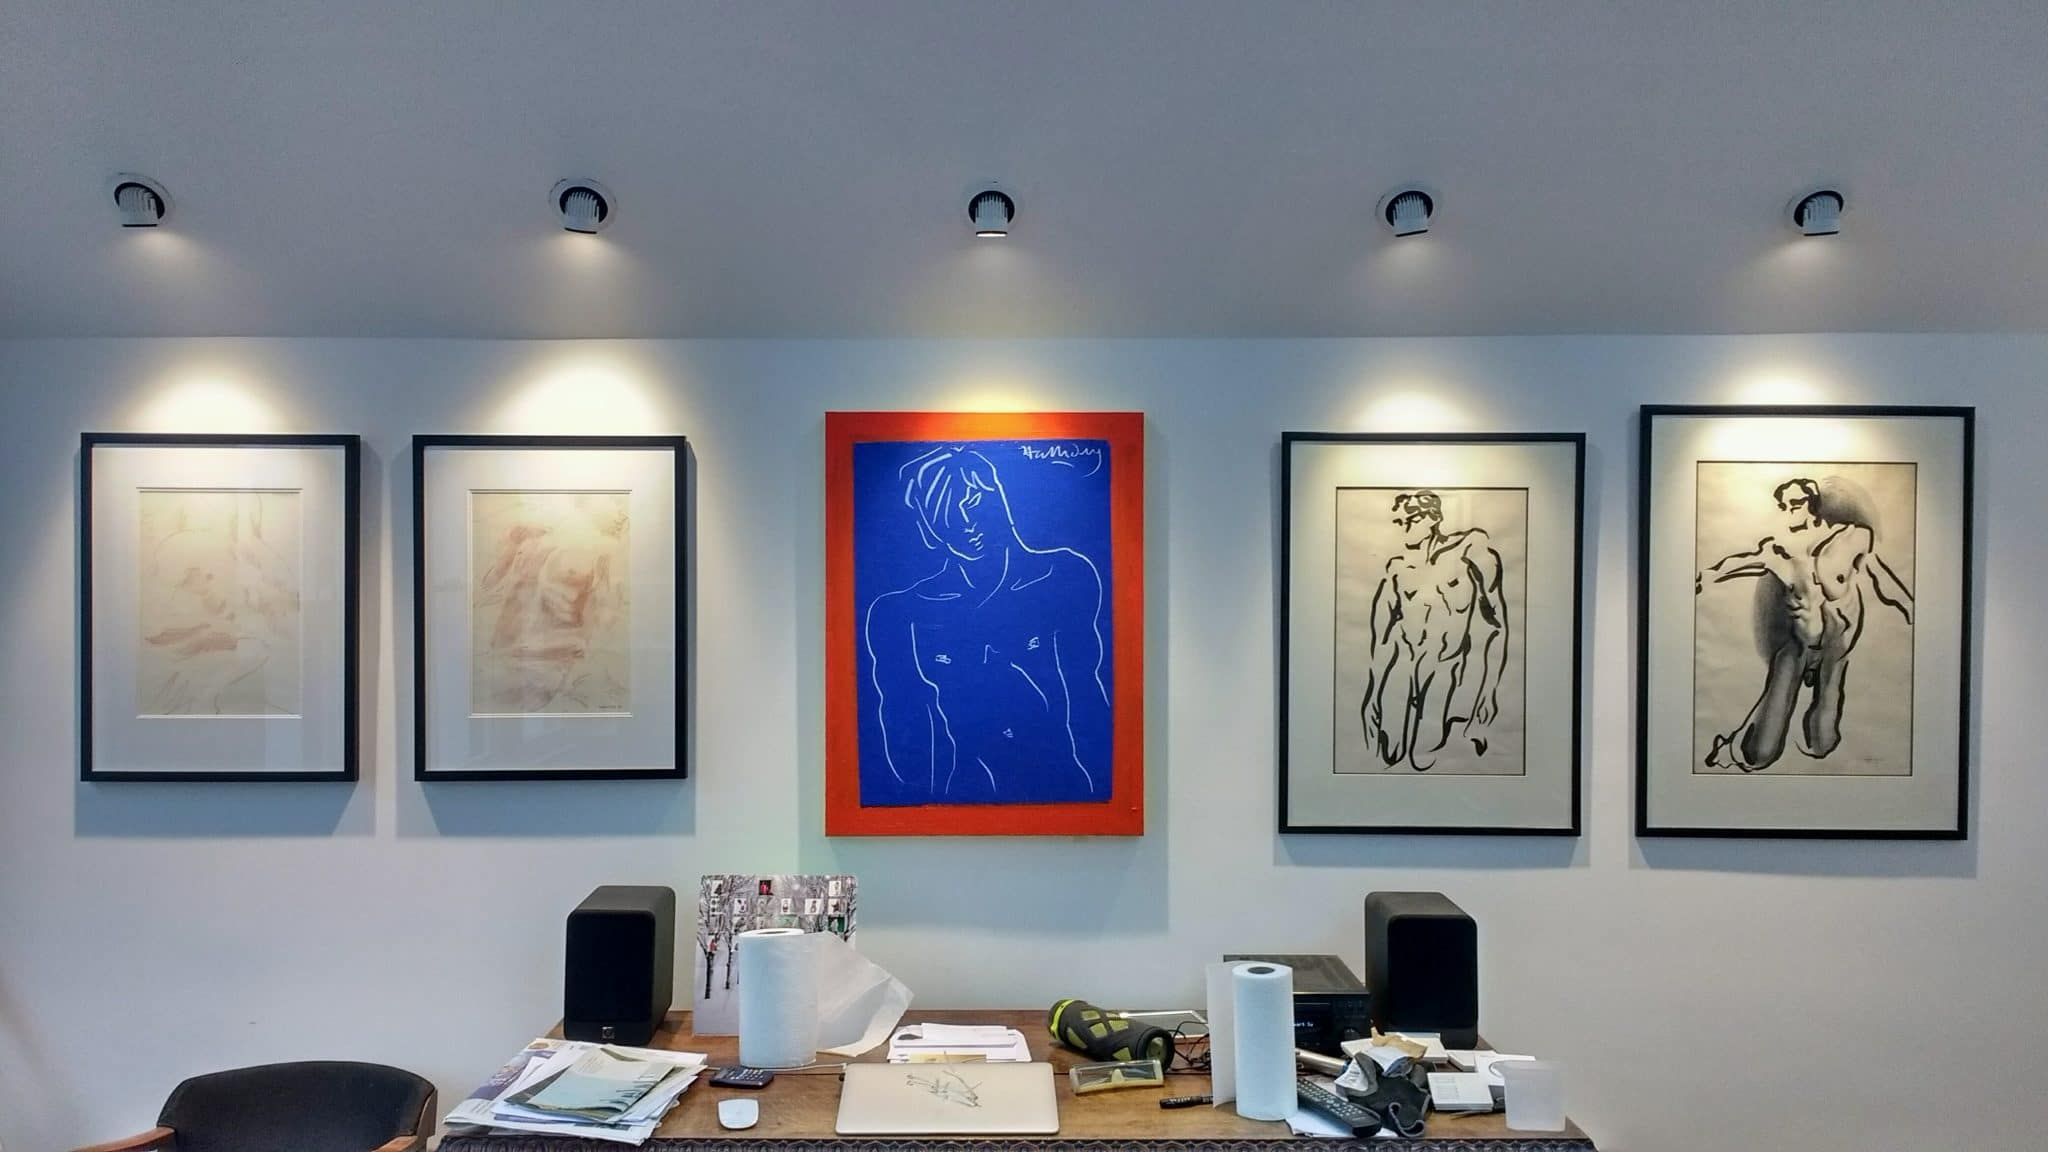 A gallery install of male nudes, hung above a desk in Horsham. in-built spotlighting means business.